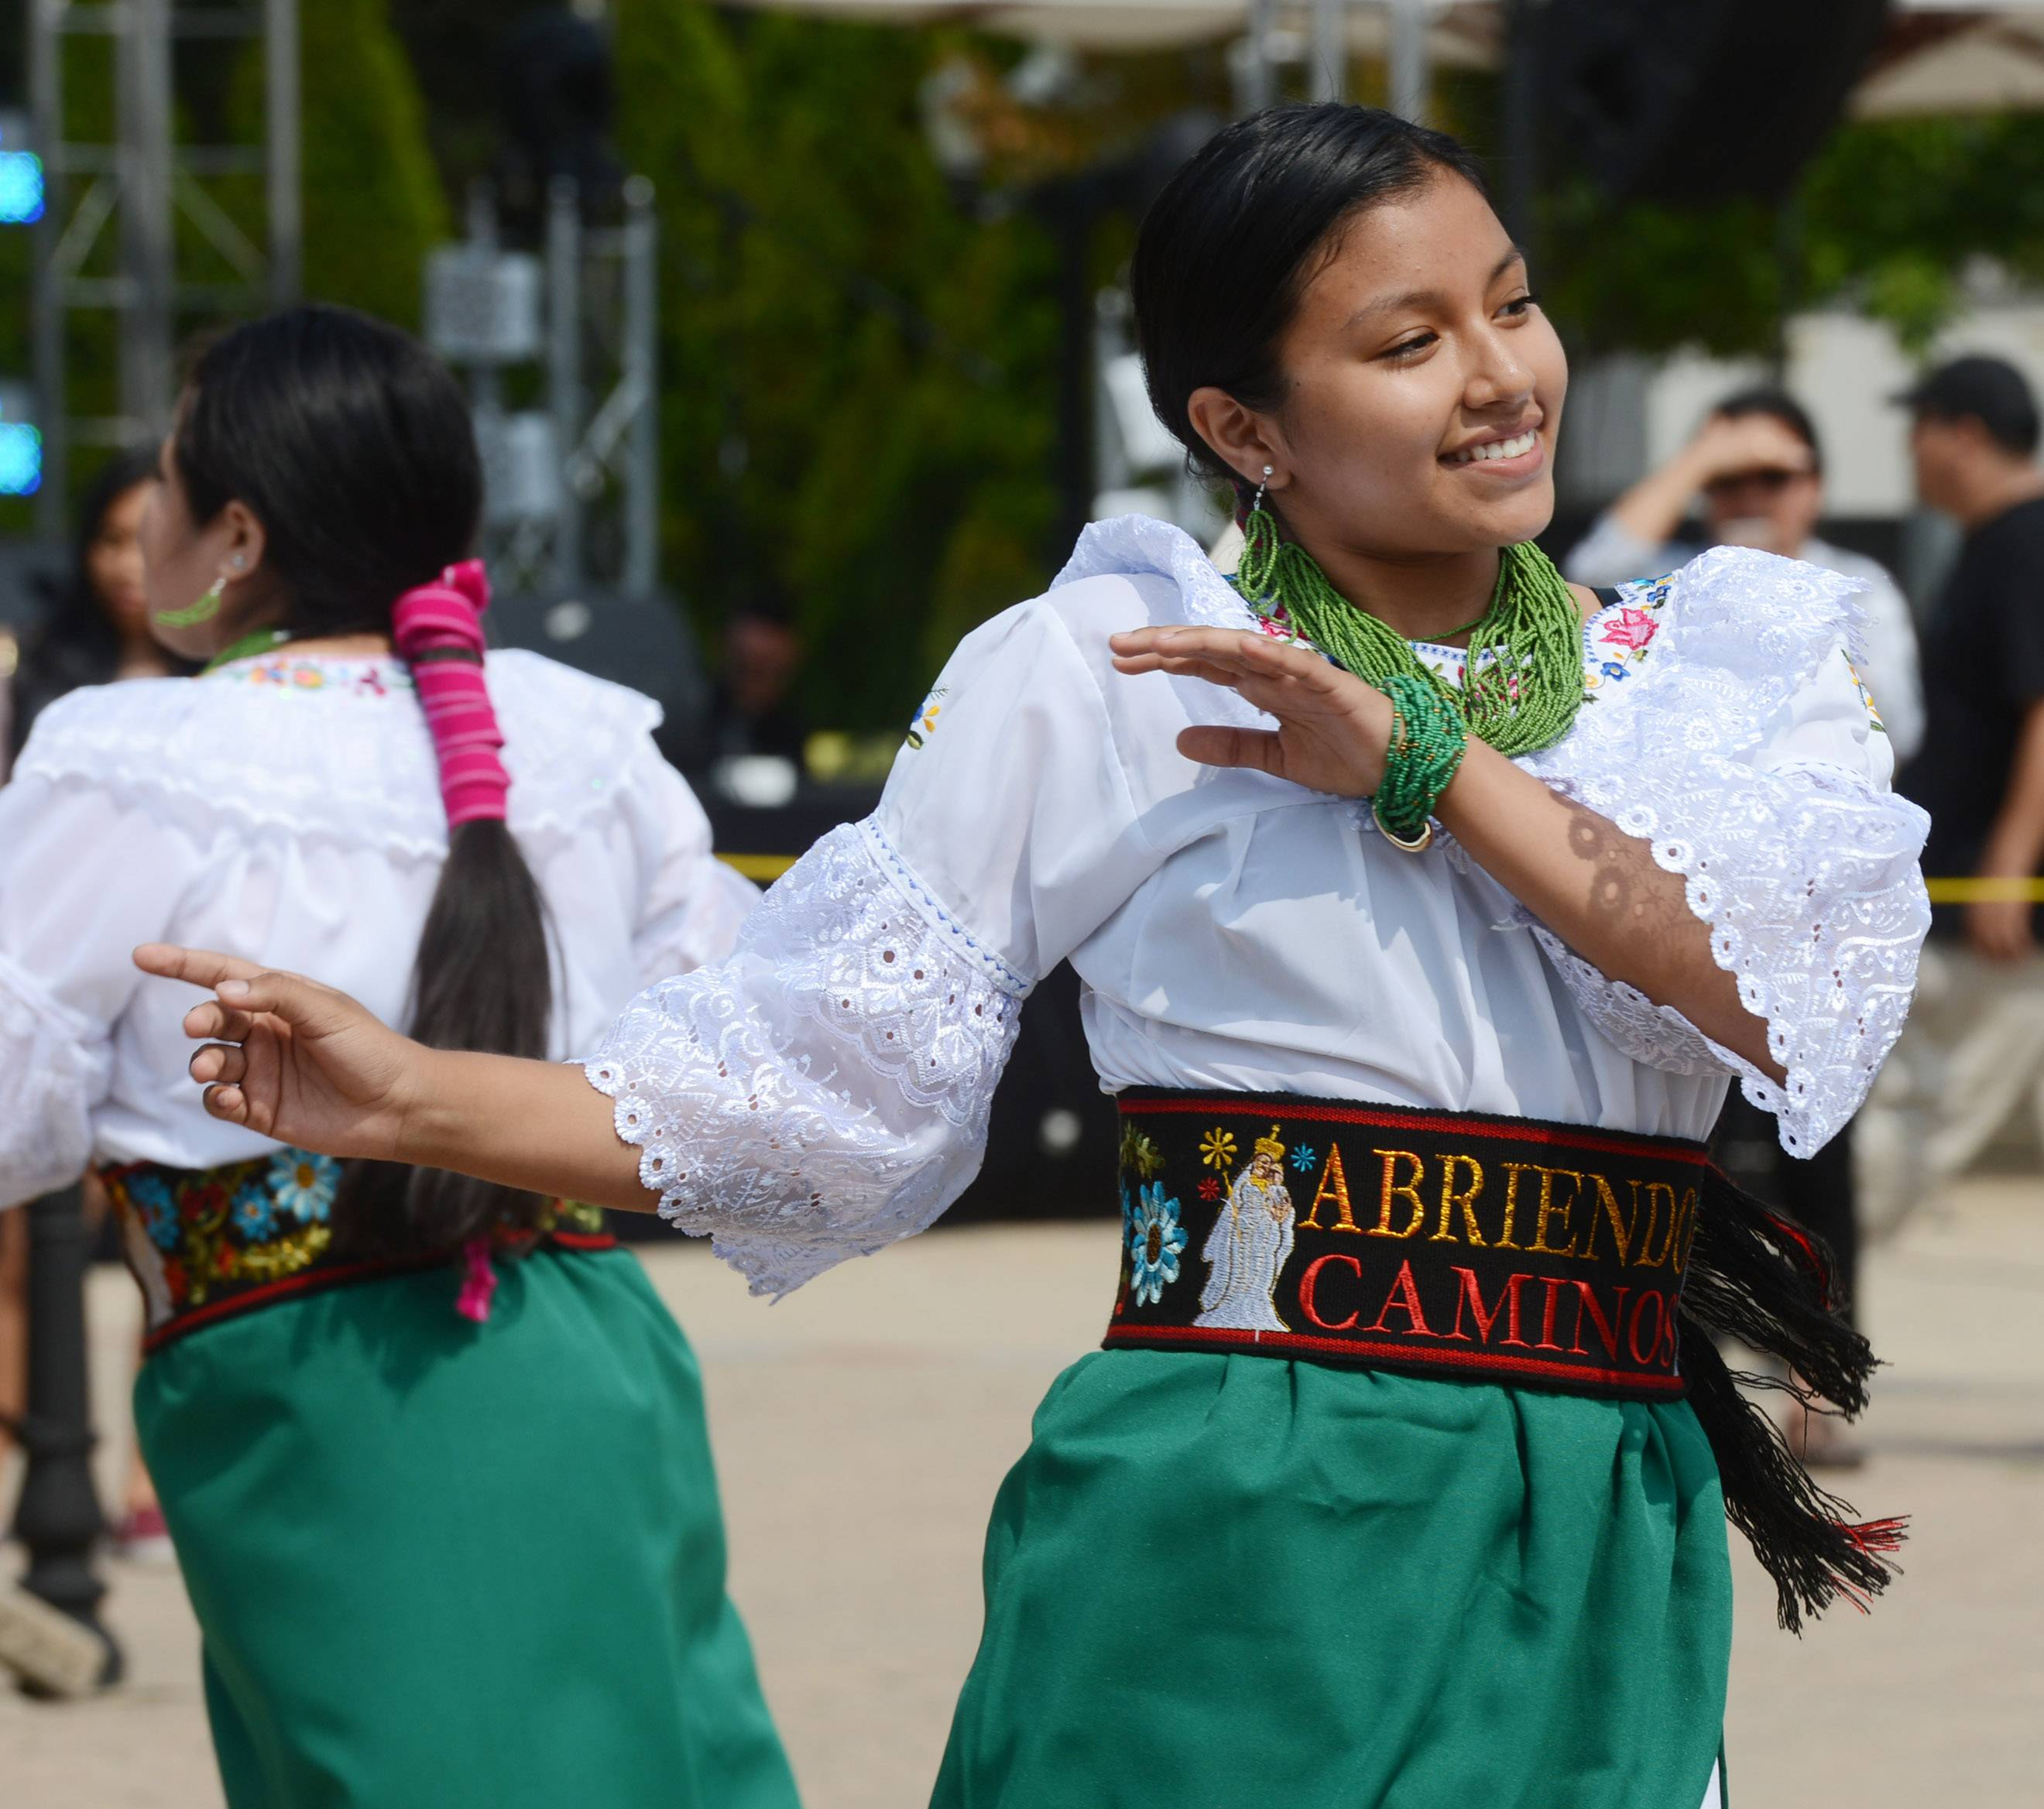 Gissela Rodriguez of the group Abriendo Caminos dances during the Guadalupe Summer Celebration at the Shrine of Guadalupe in Des Plaines Saturday.